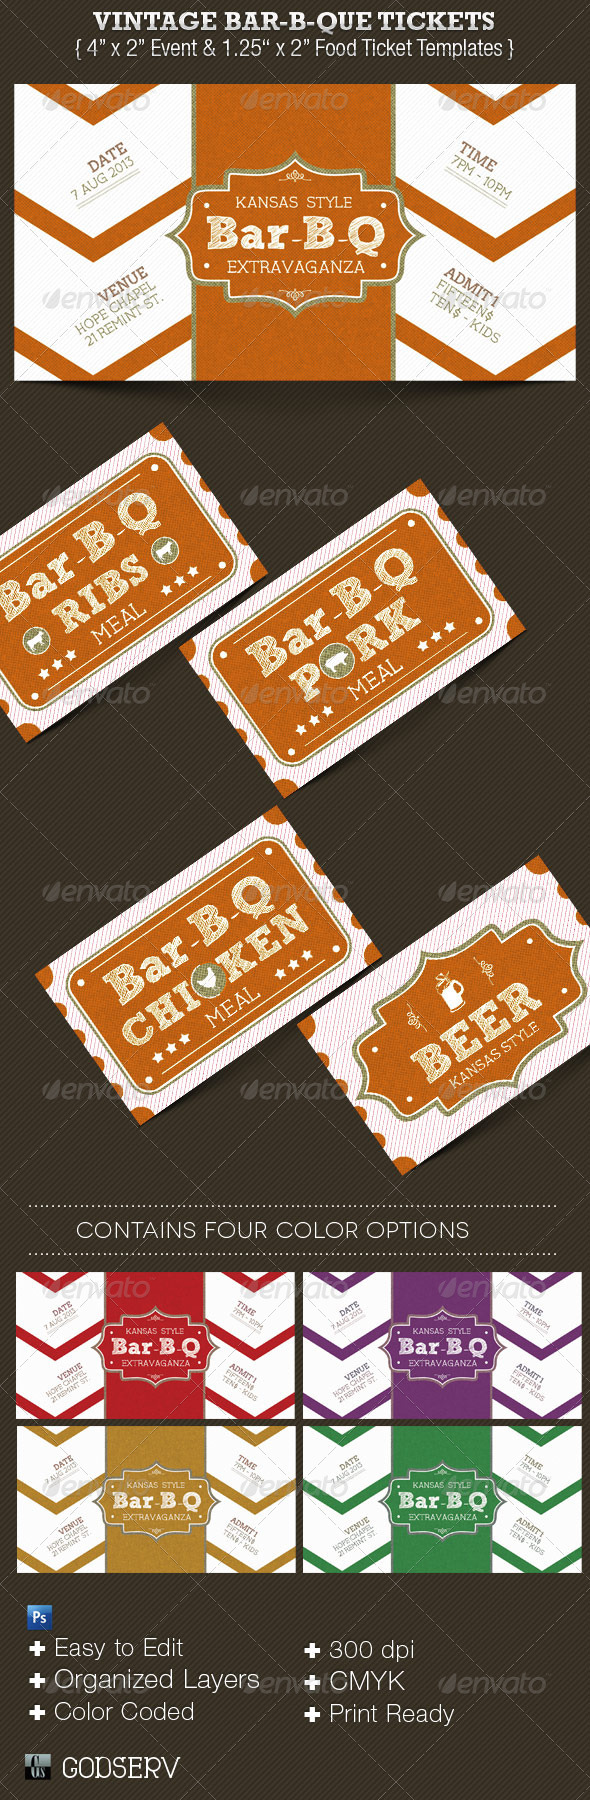 Vintage Bar-B-Que Ticket Template Set - Miscellaneous Print Templates